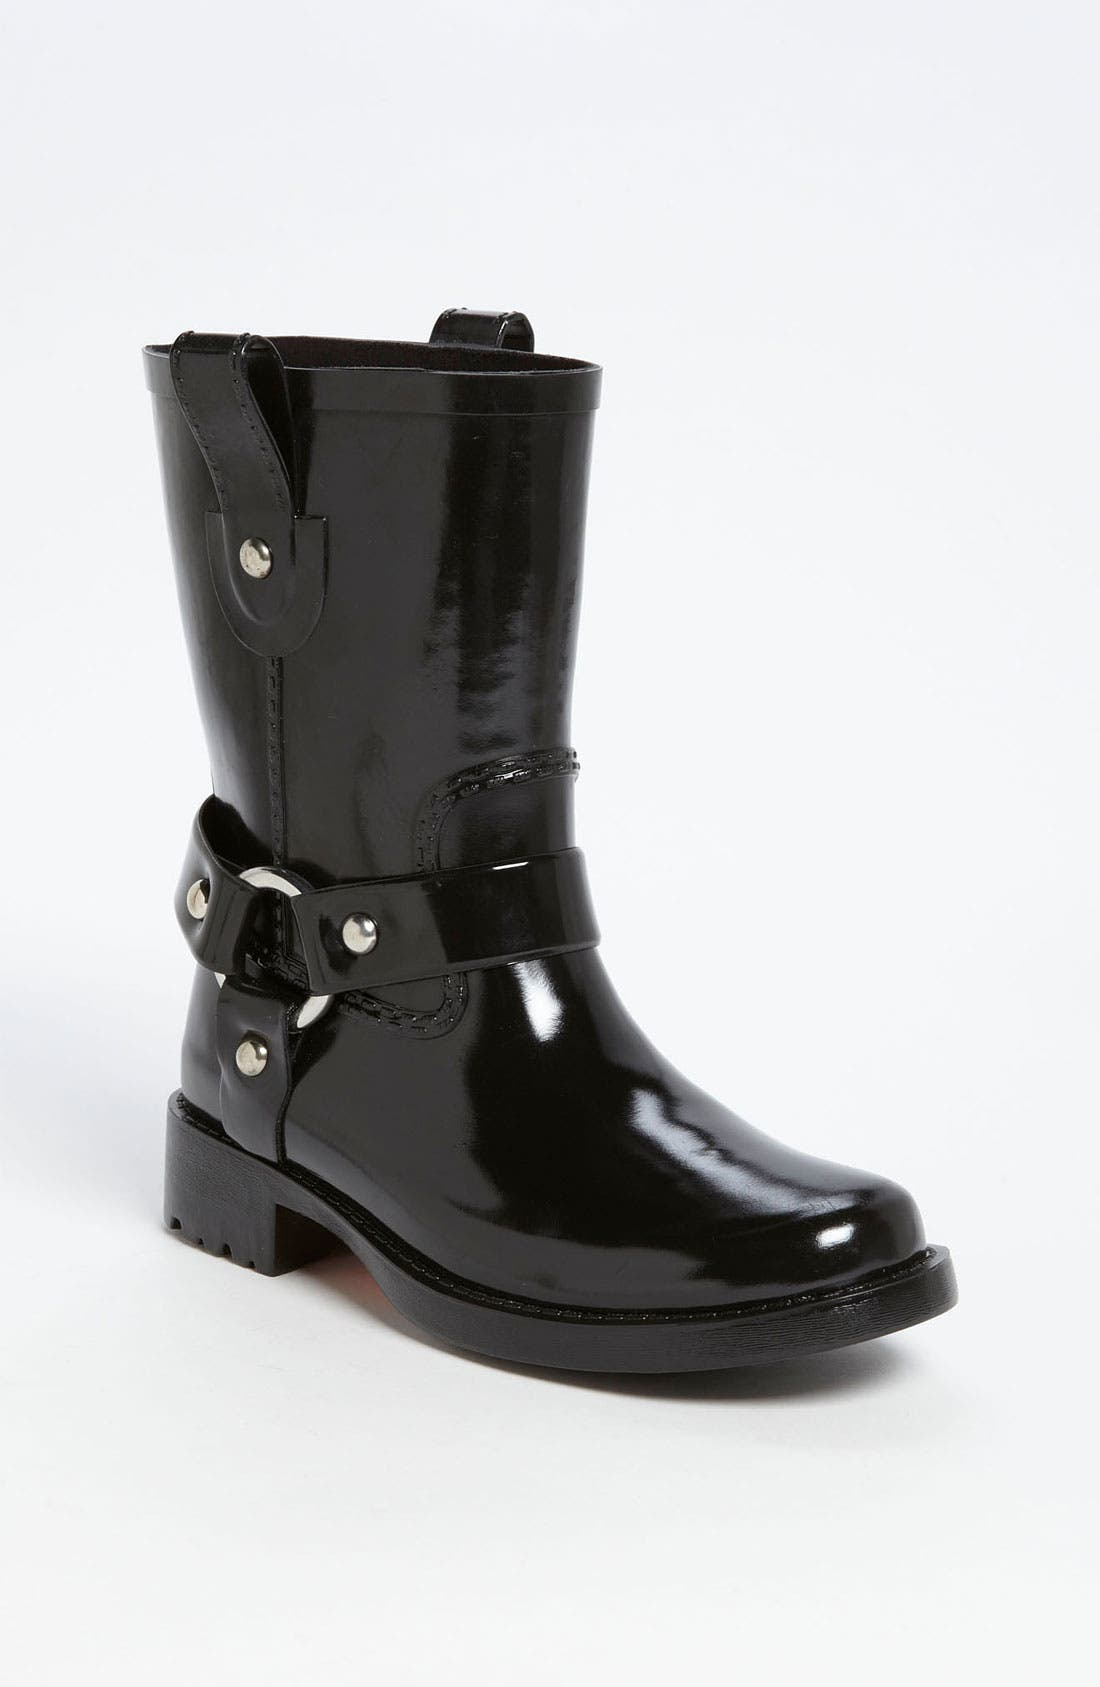 Alternate Image 1 Selected - KORS Michael Kors 'Stormette' Rain Boot (Women)